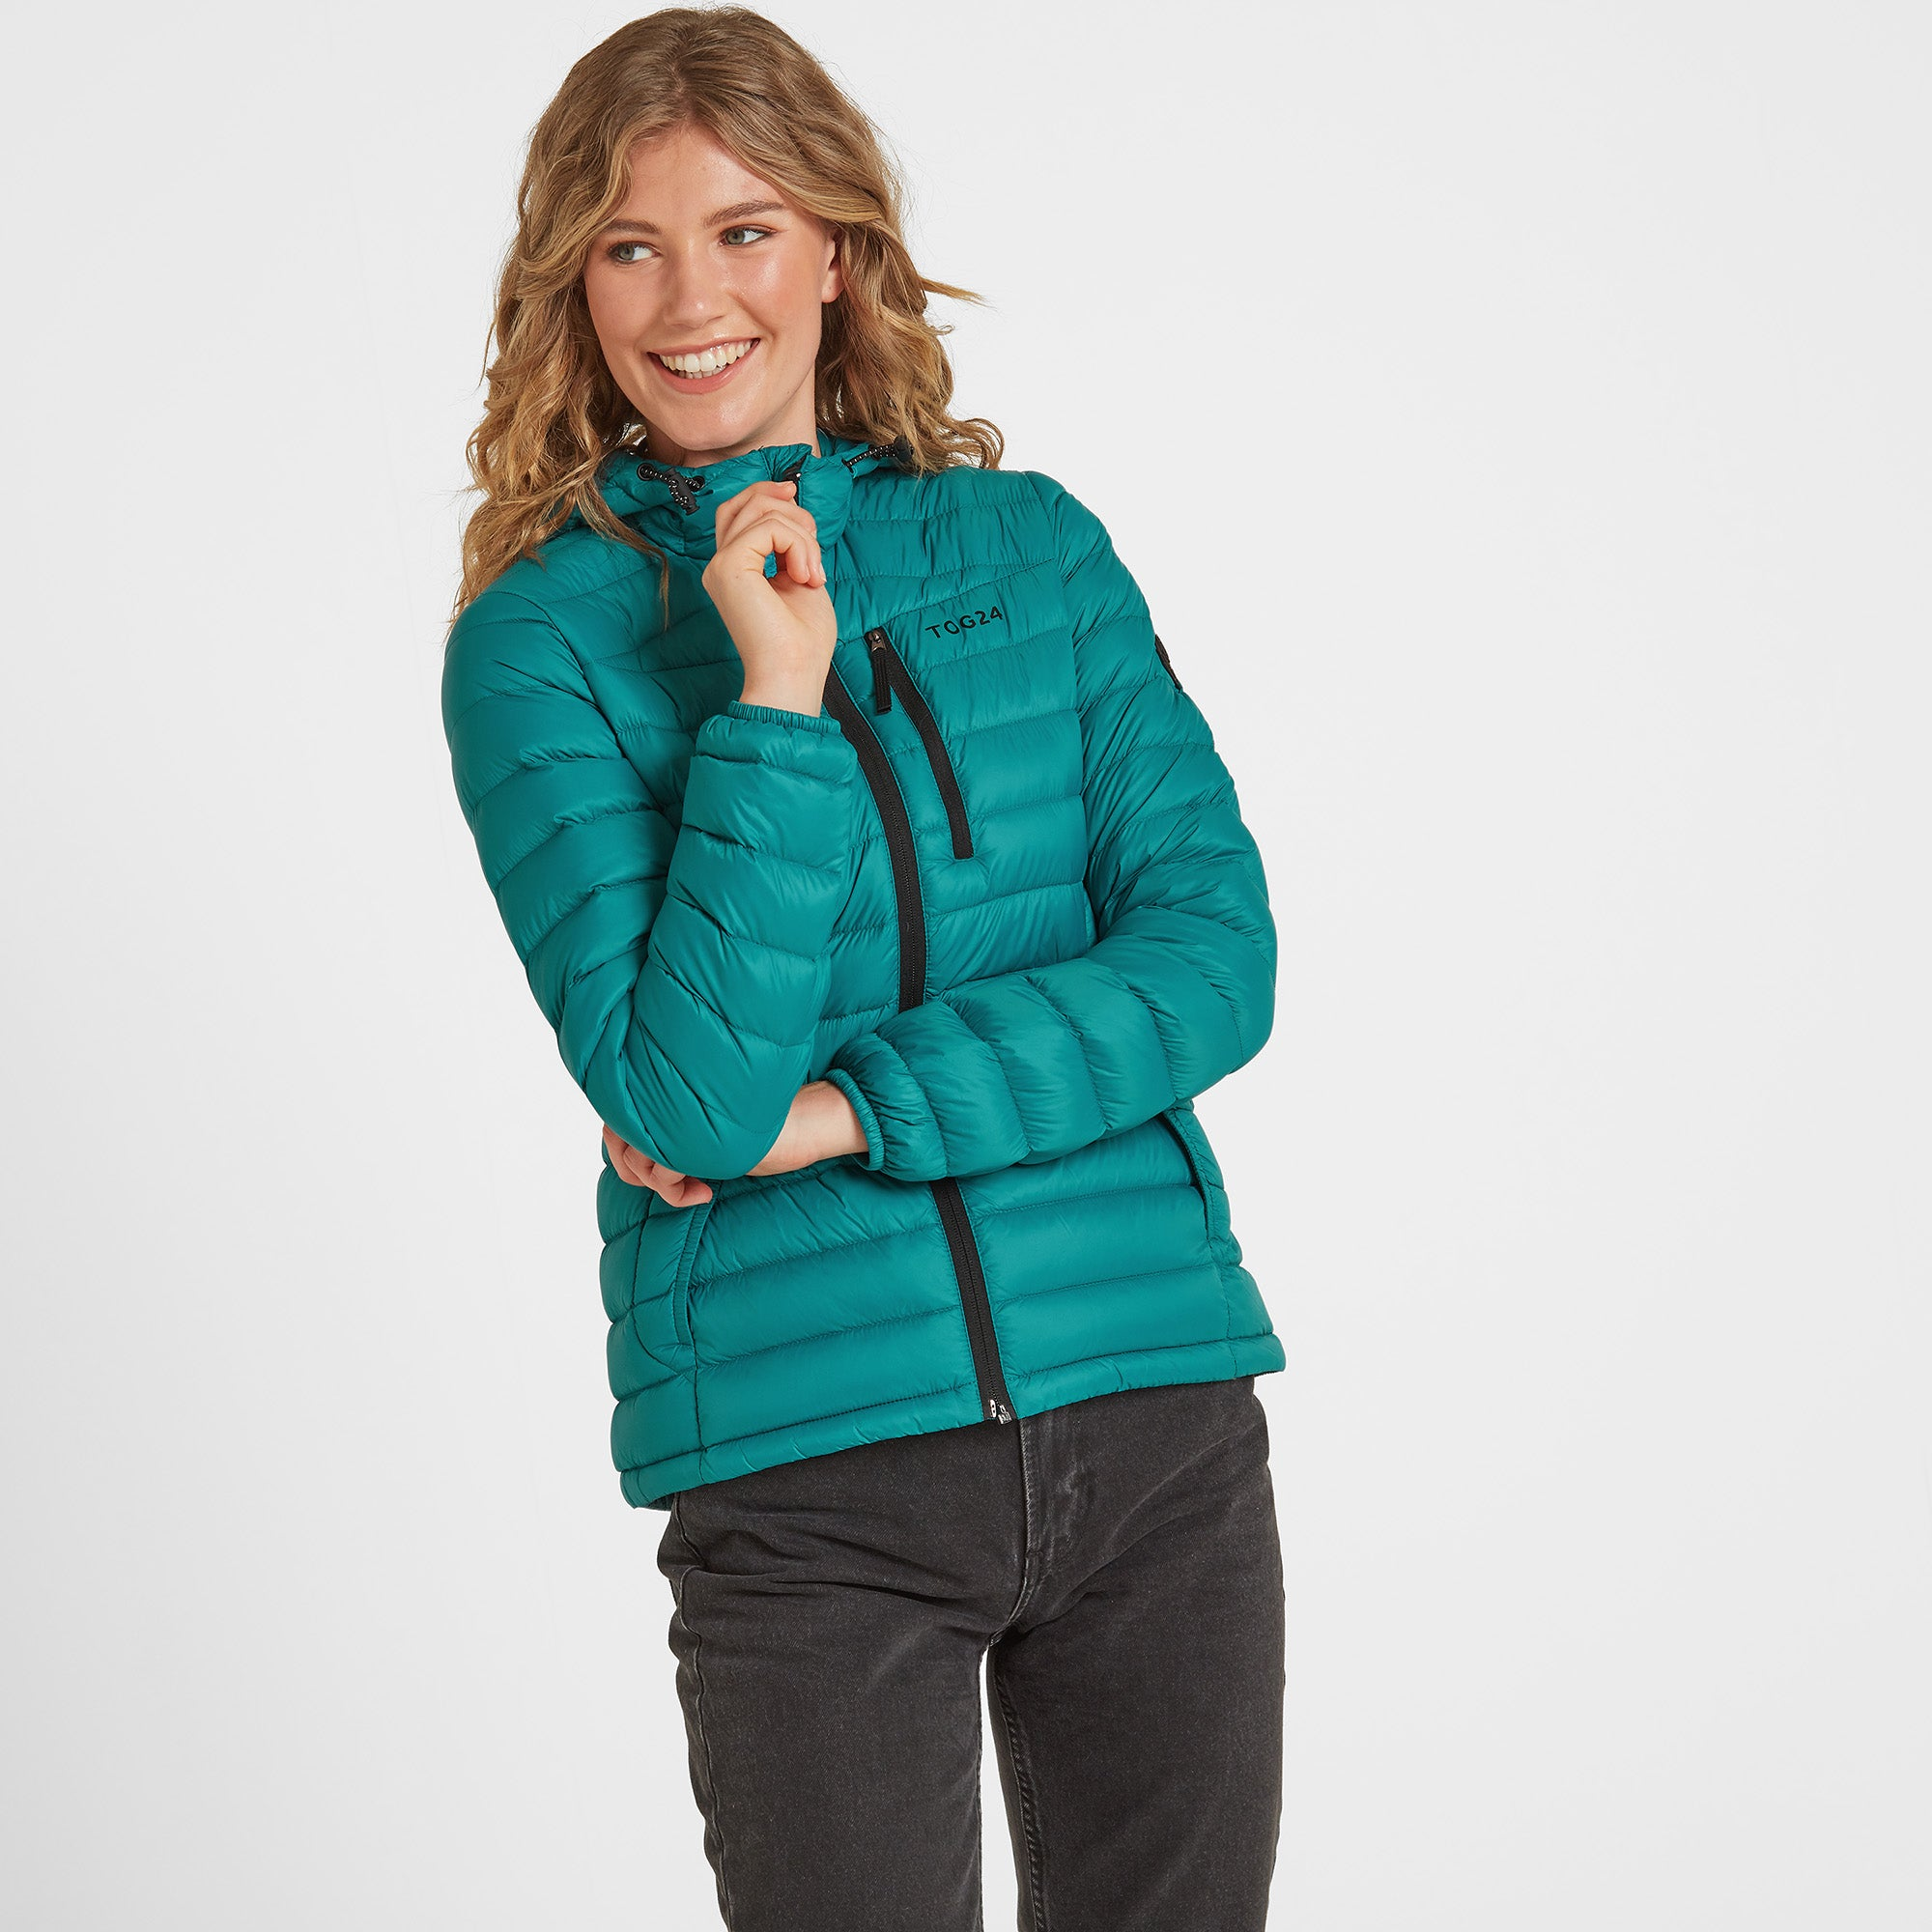 Drax Womens Hooded Down Jacket - Topaz